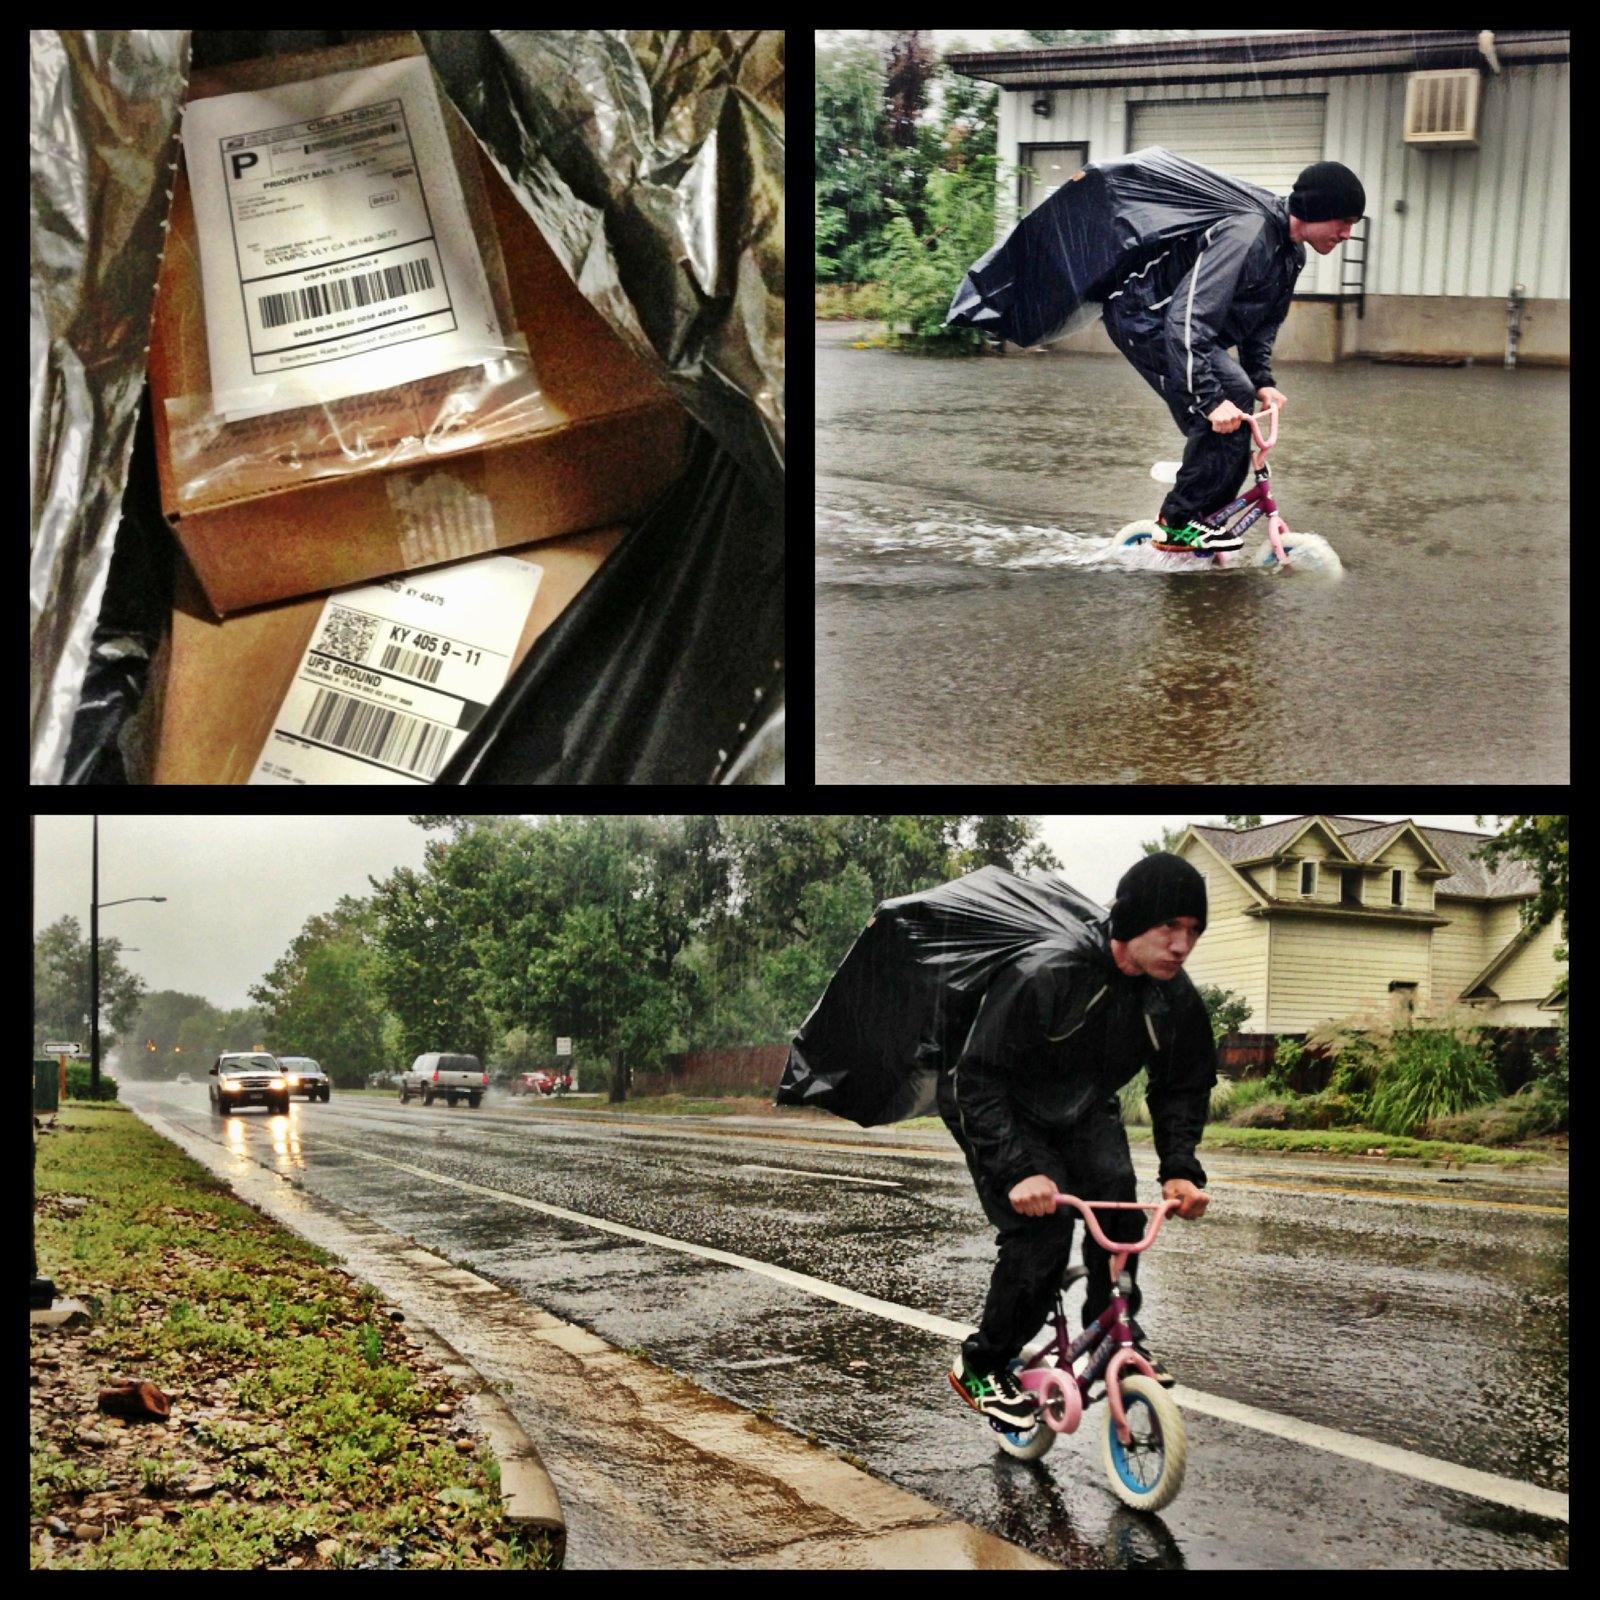 Fighting through the flood to get orders out